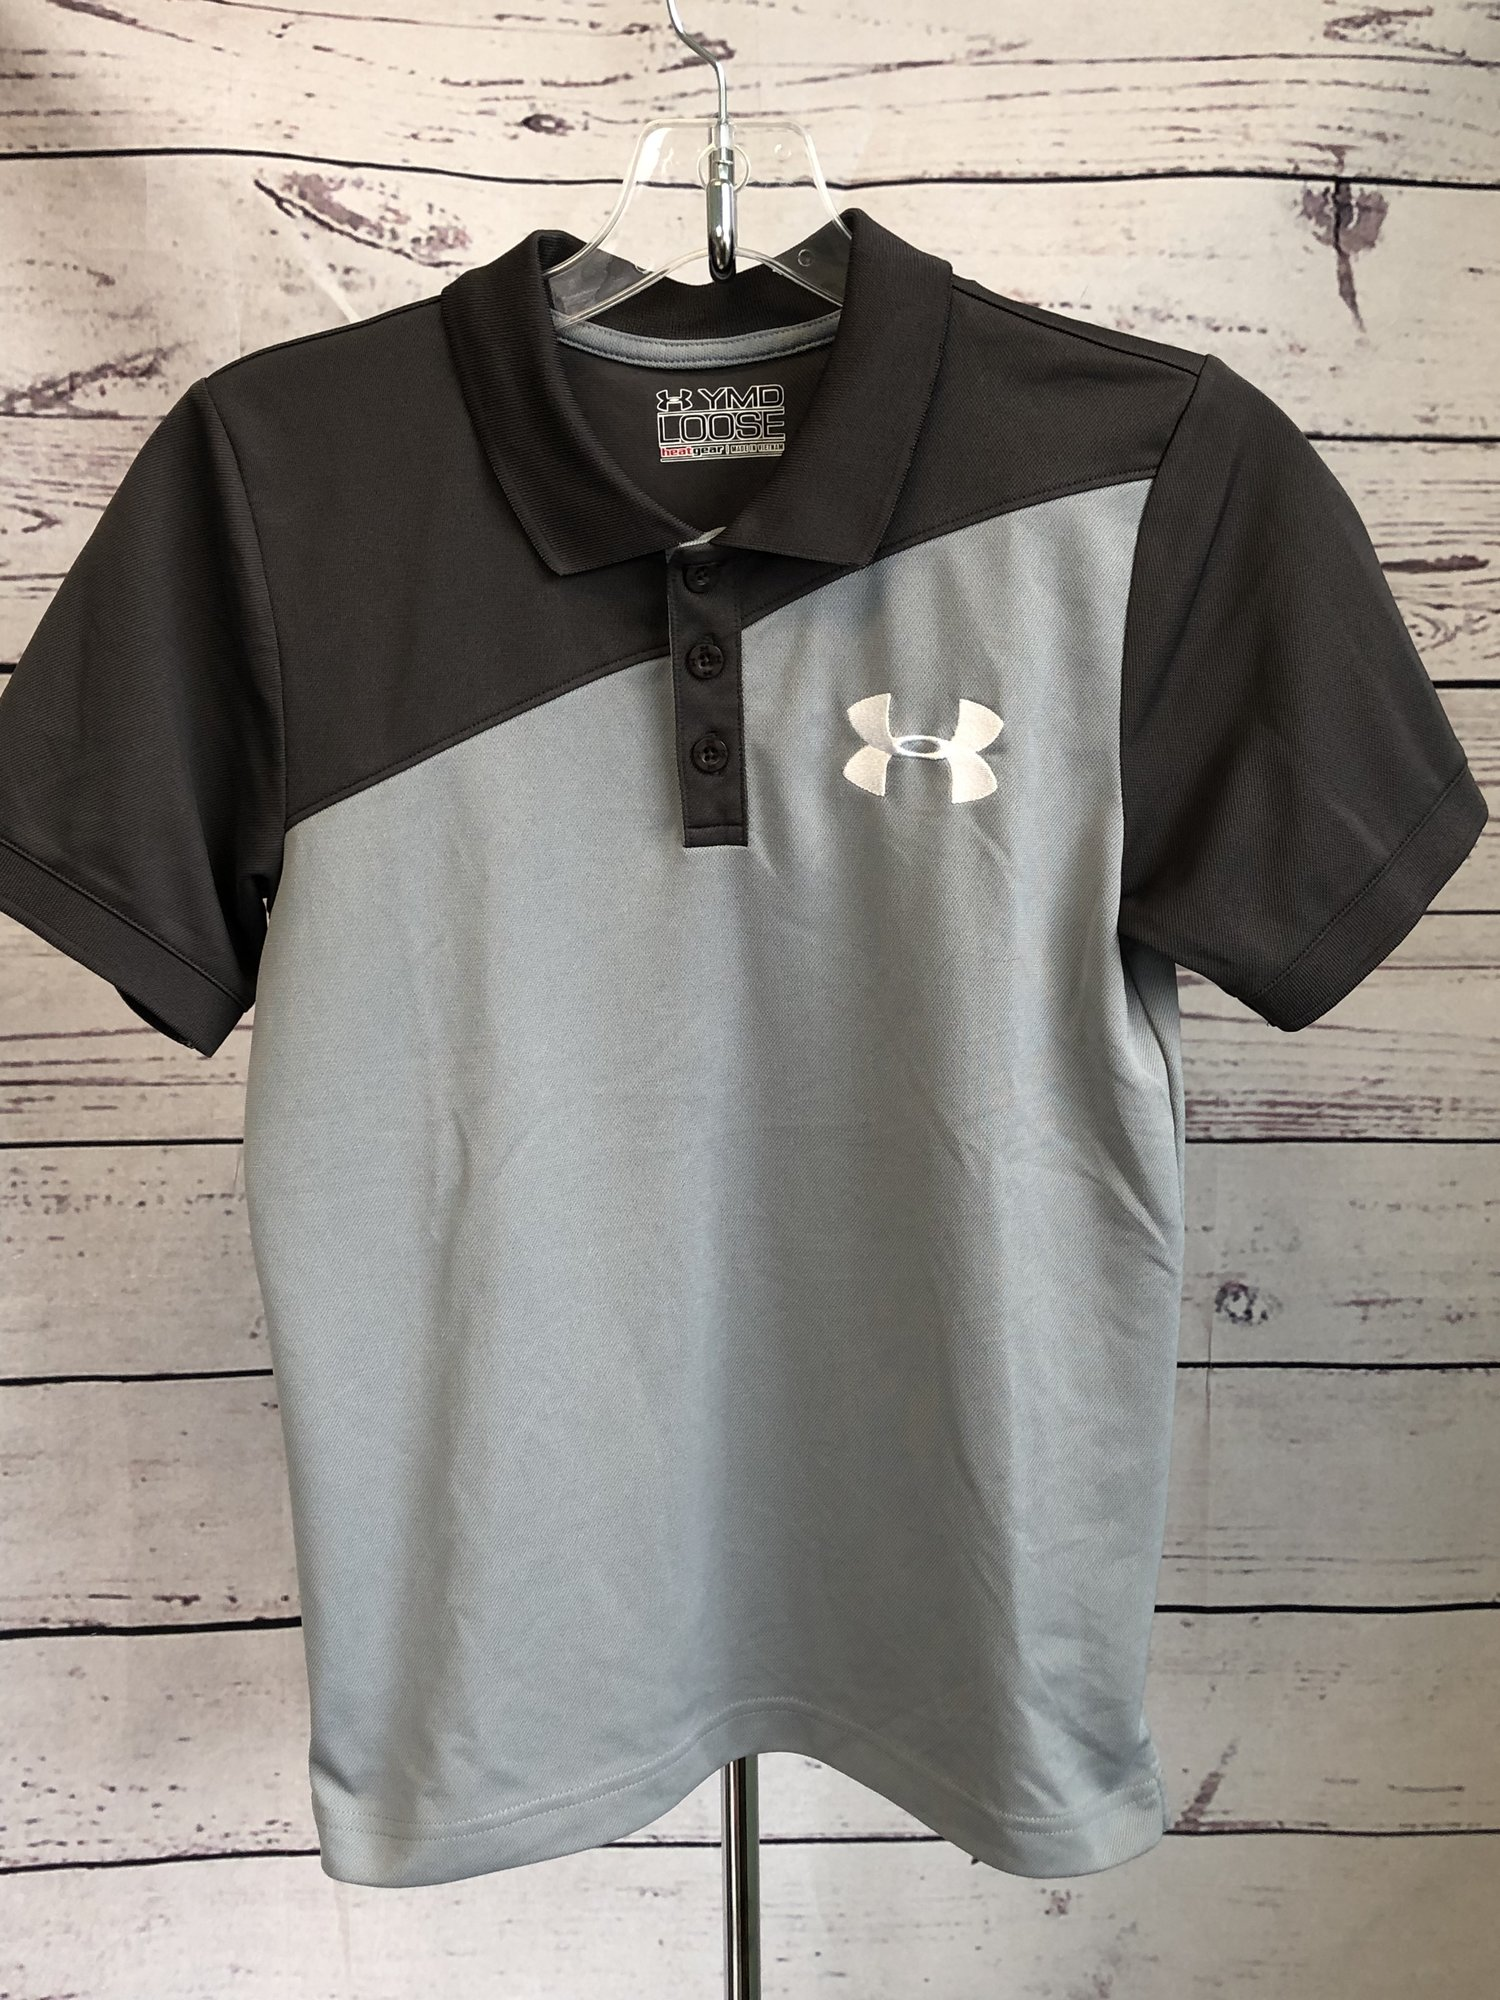 Under Armour short sleeve heat gear polo with 3 buttons